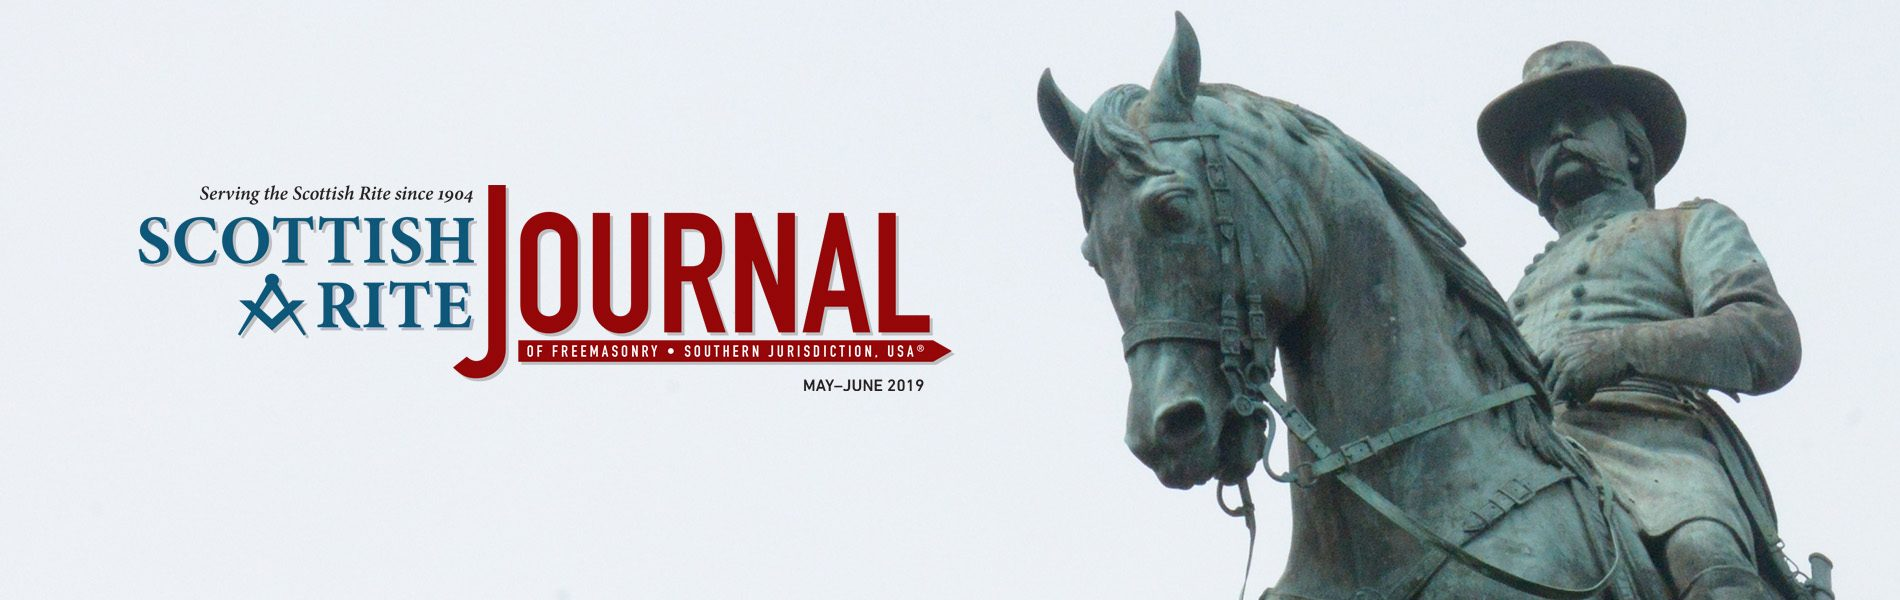 May/June 2019 Scottish Rite Journal